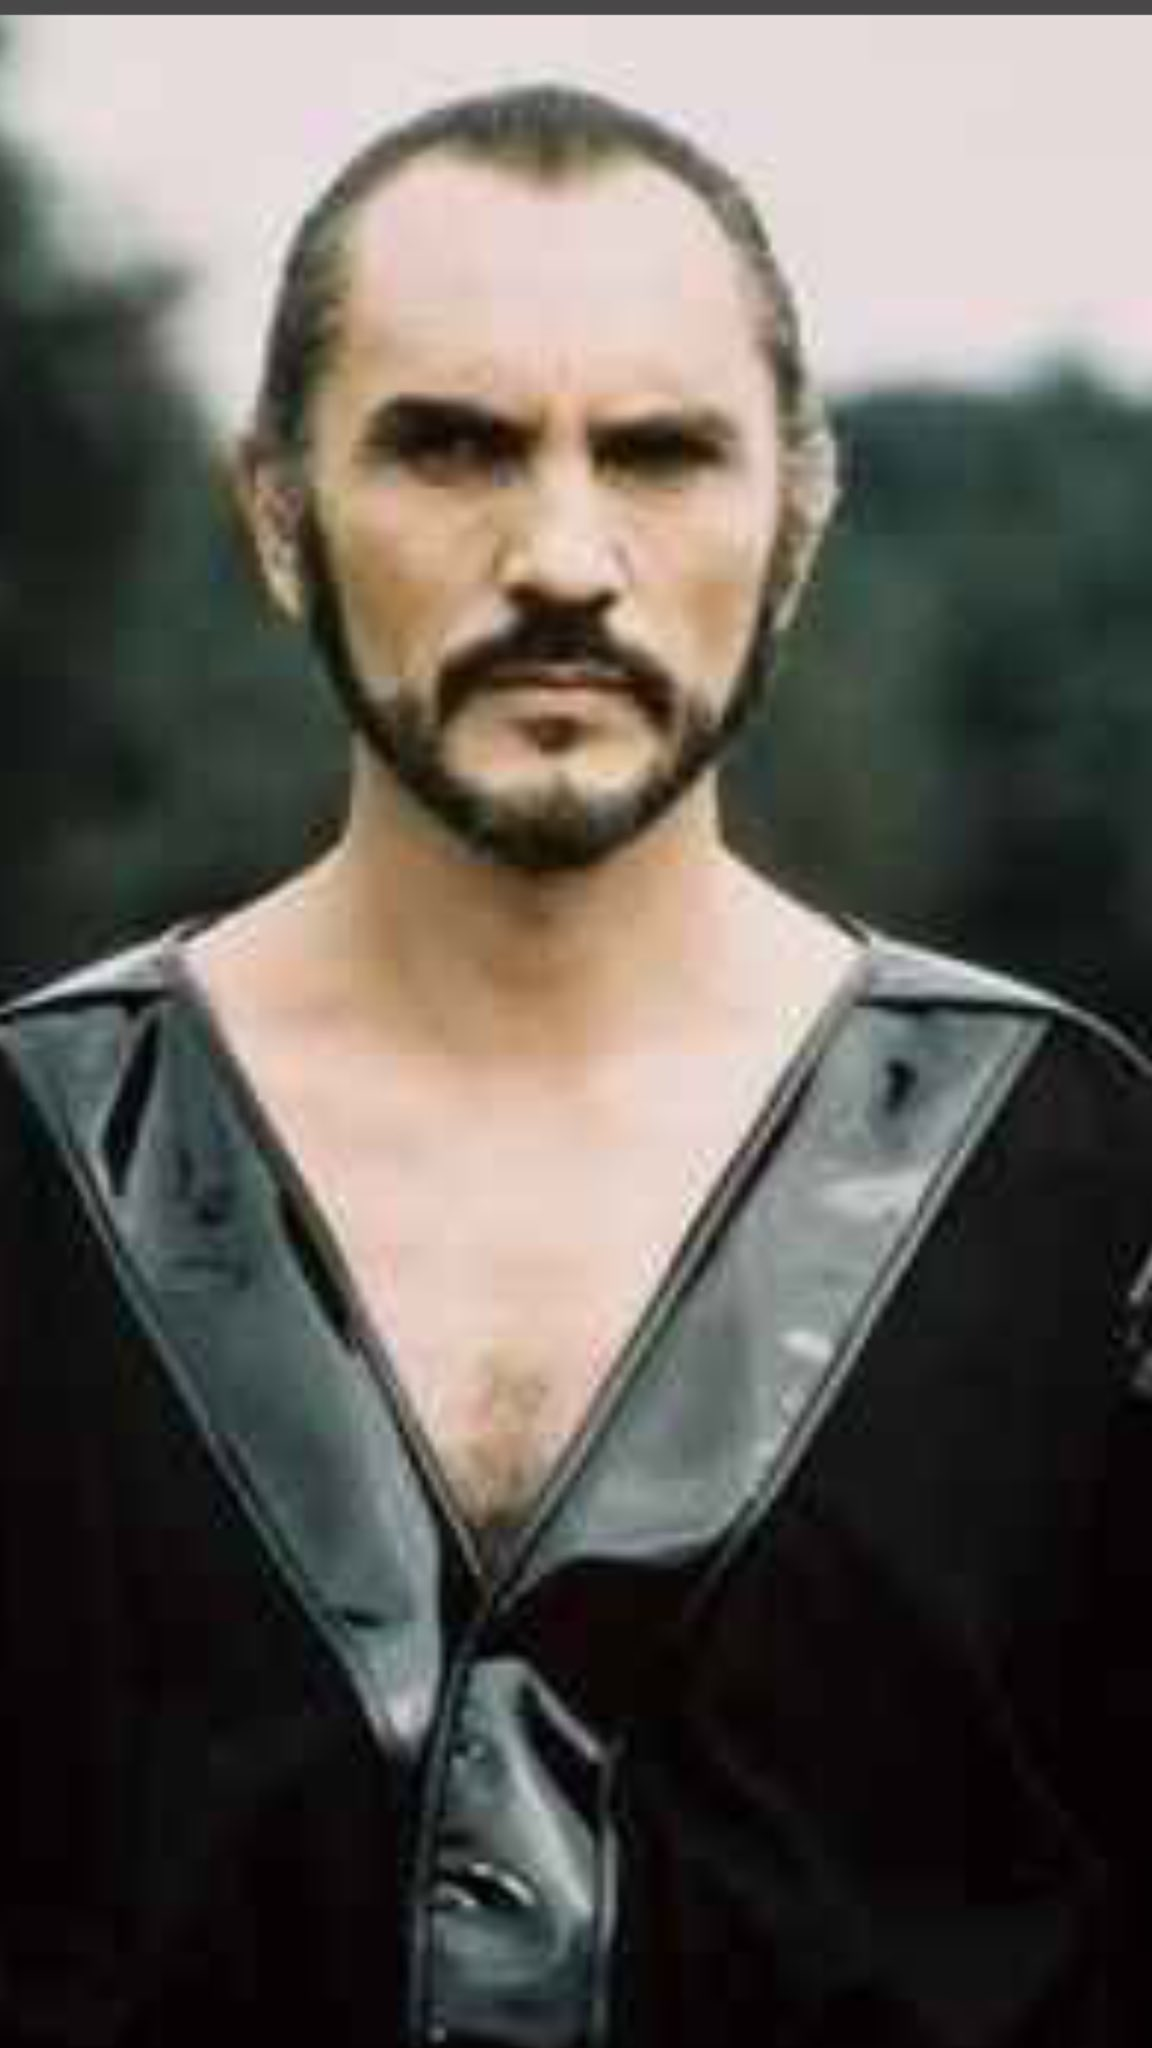 General Zod from superman 2, me favourite baddy. Who's yours? https://t.co/4vDR8jjk75